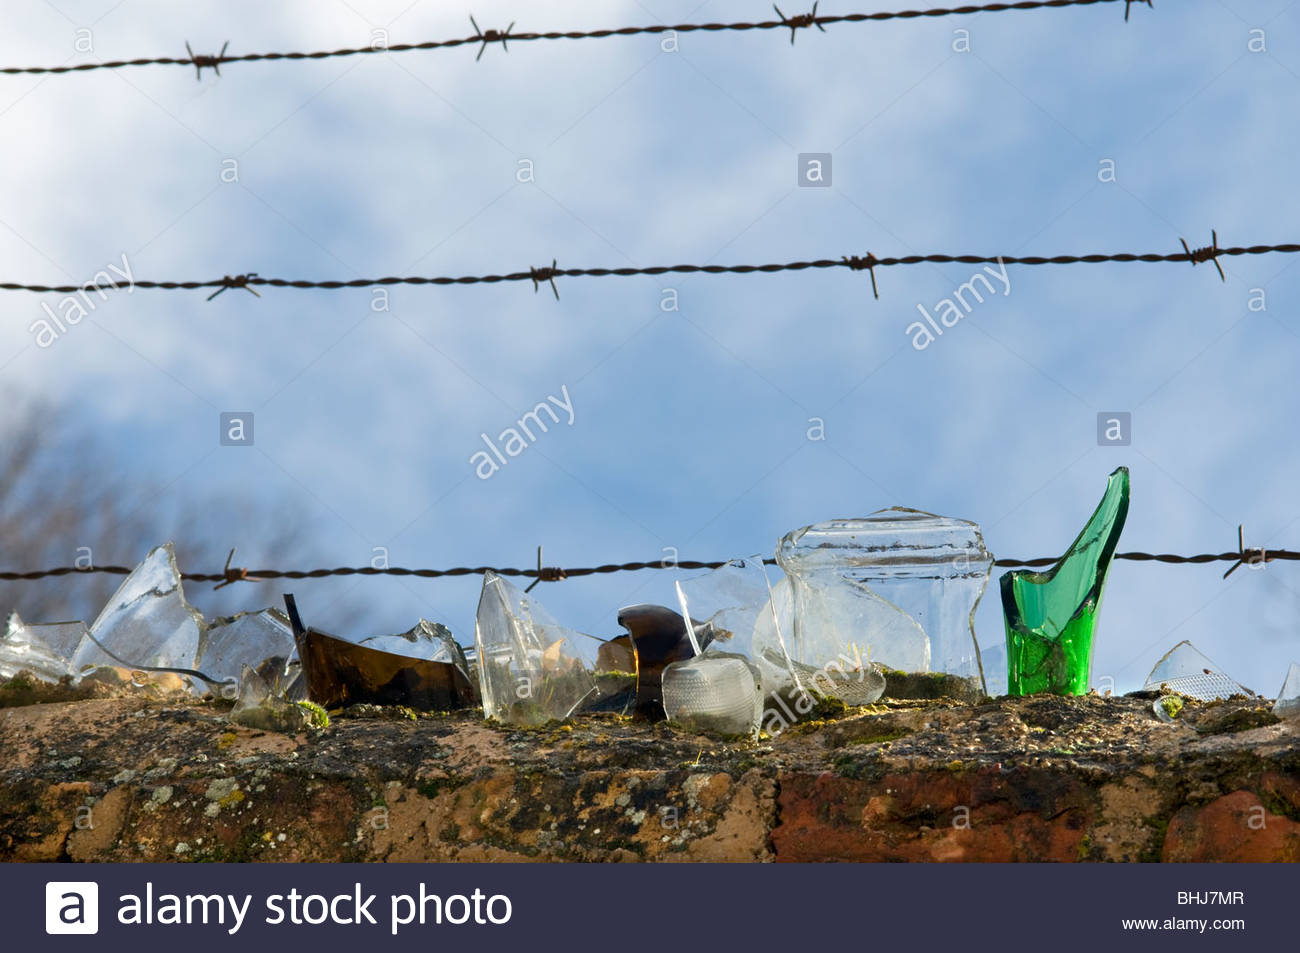 Old Fashioned Security Measures Stock Photos & Old Fashioned ...